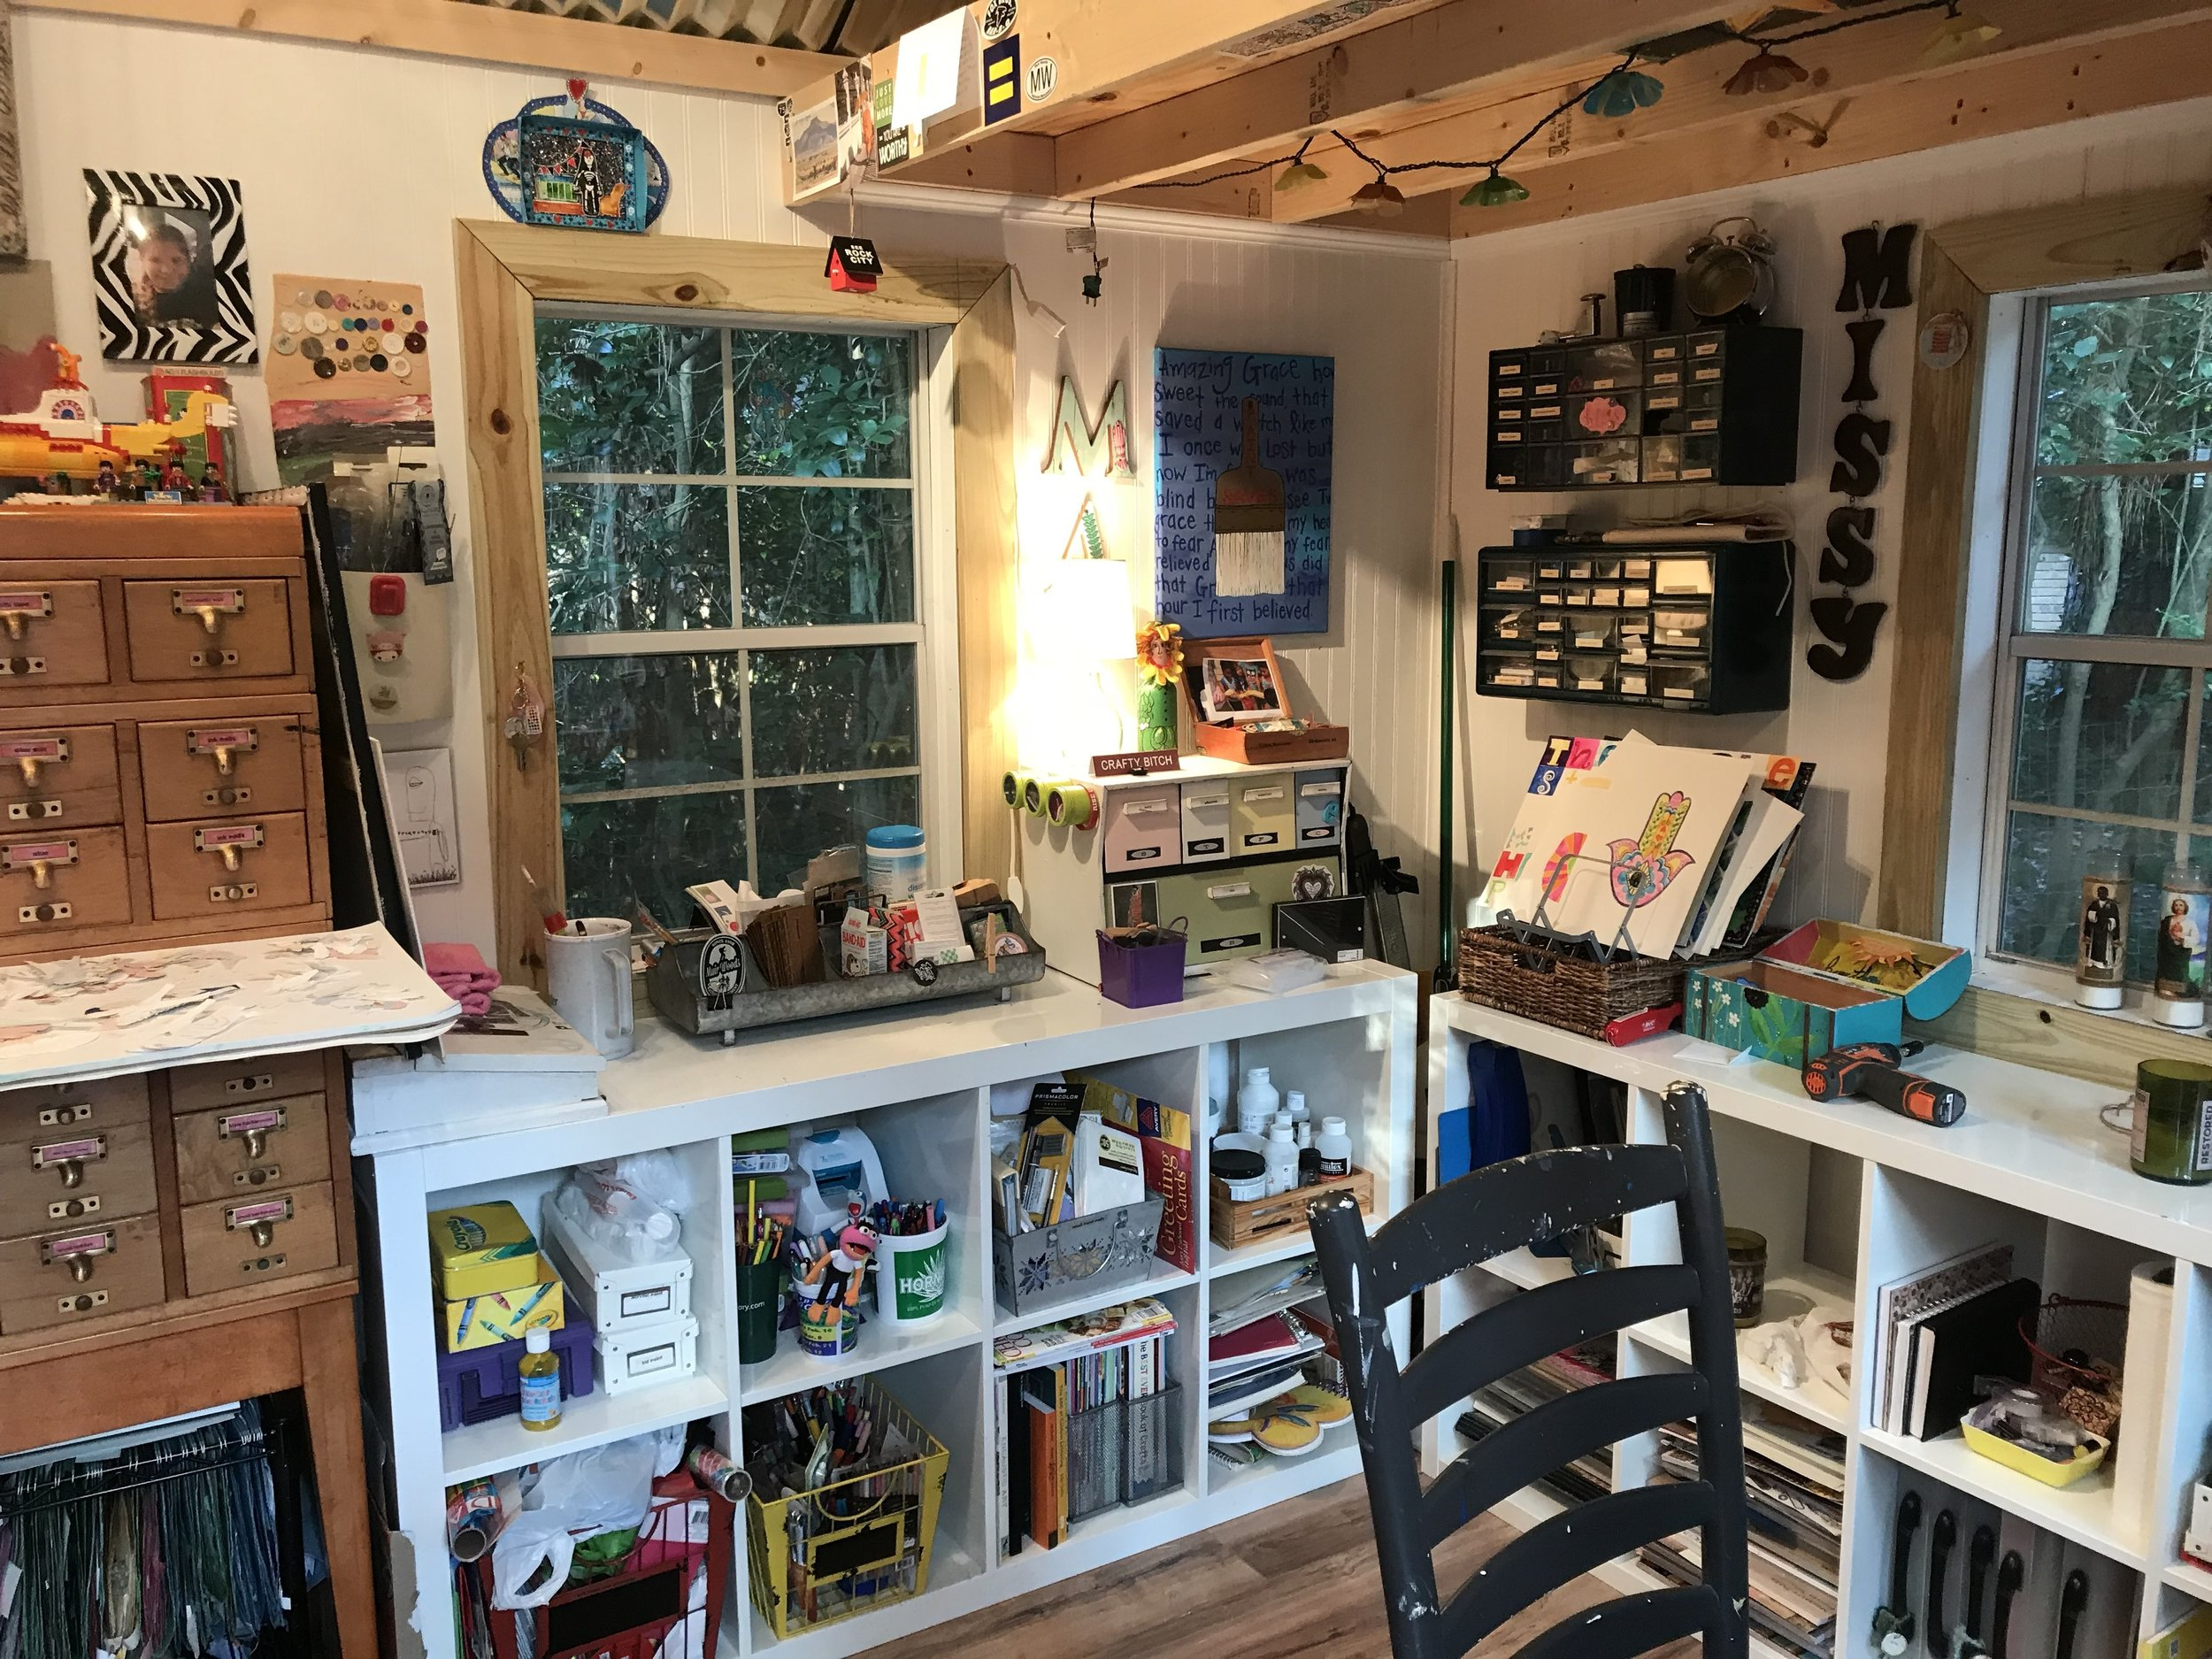 This shelf holds my ridiculous collection of paints, crayons, pens, markers and pencils - THREE cubbies worth! I could teach a kindergarten class! It's also home to my books, magazines and random gessos, mediums, glues and stuff.